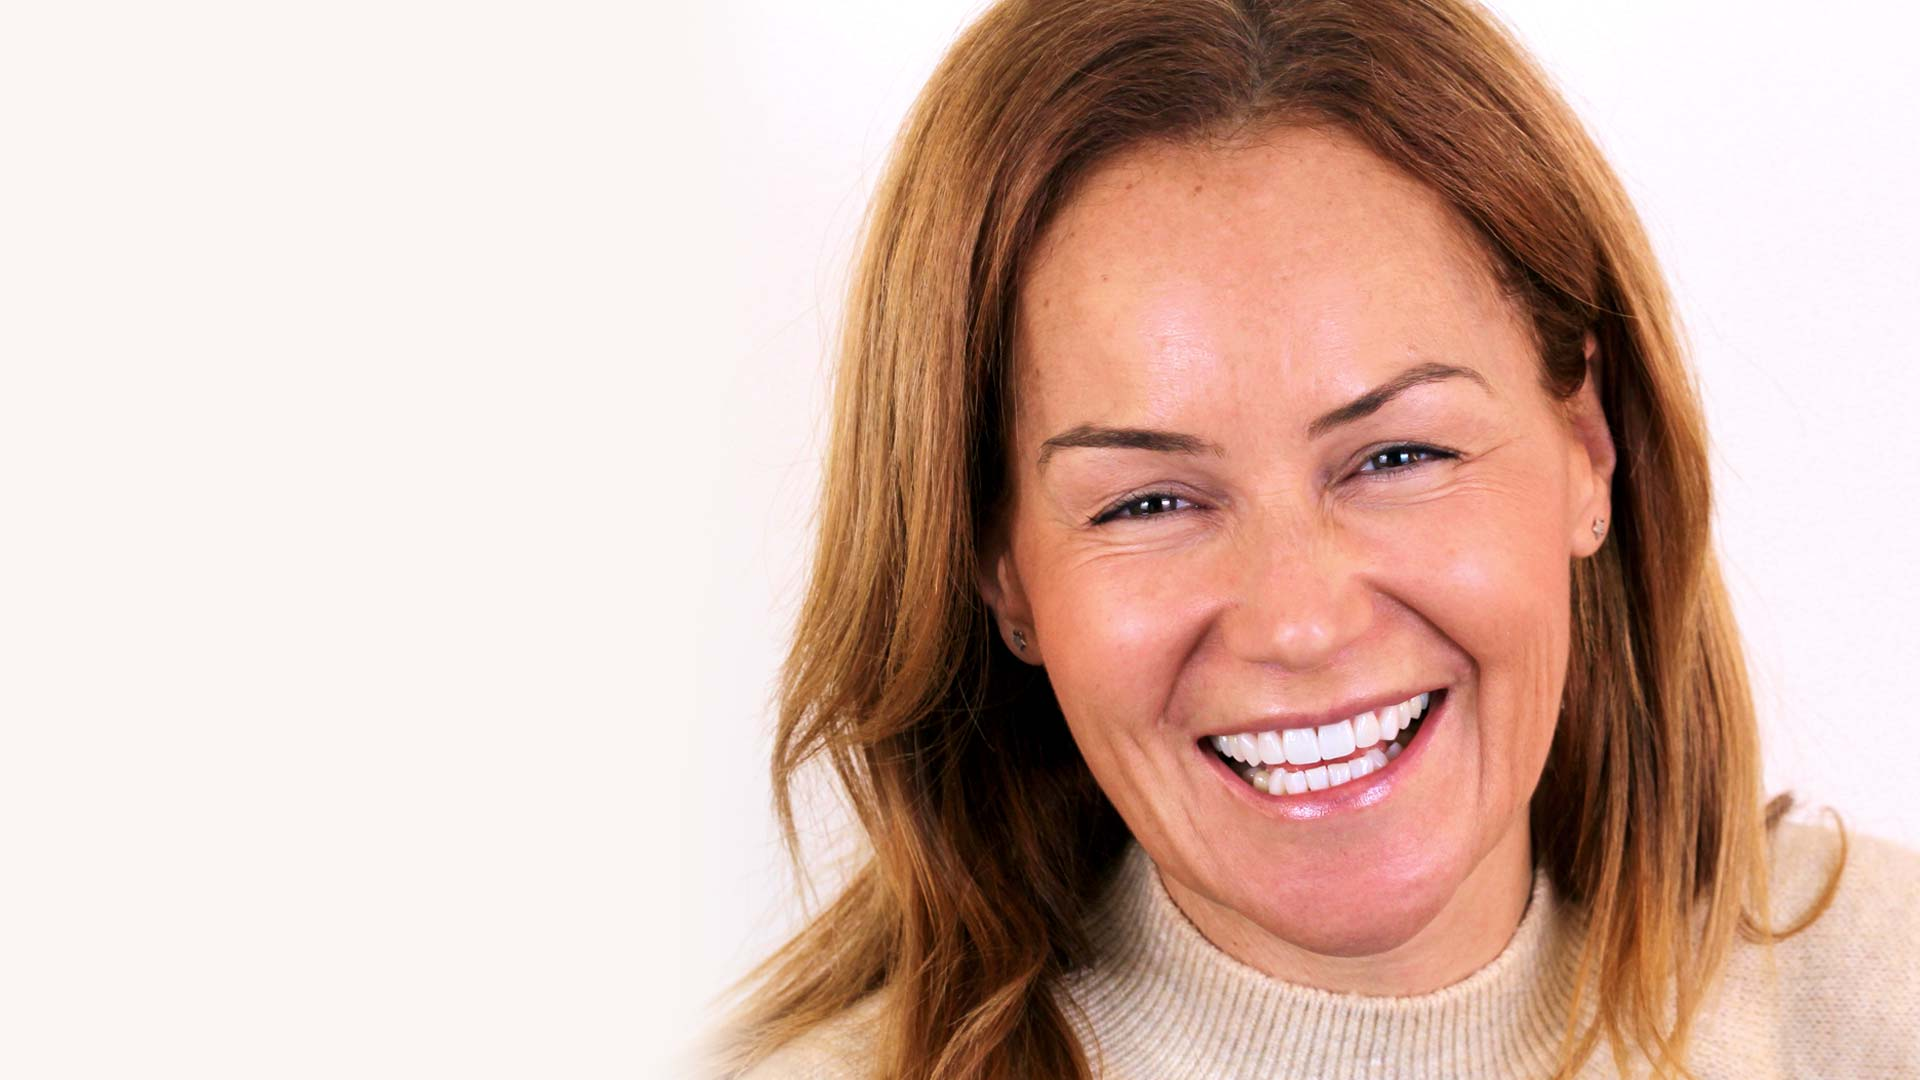 A woman smiles confidently after having Digital Smile Design dental treatment.